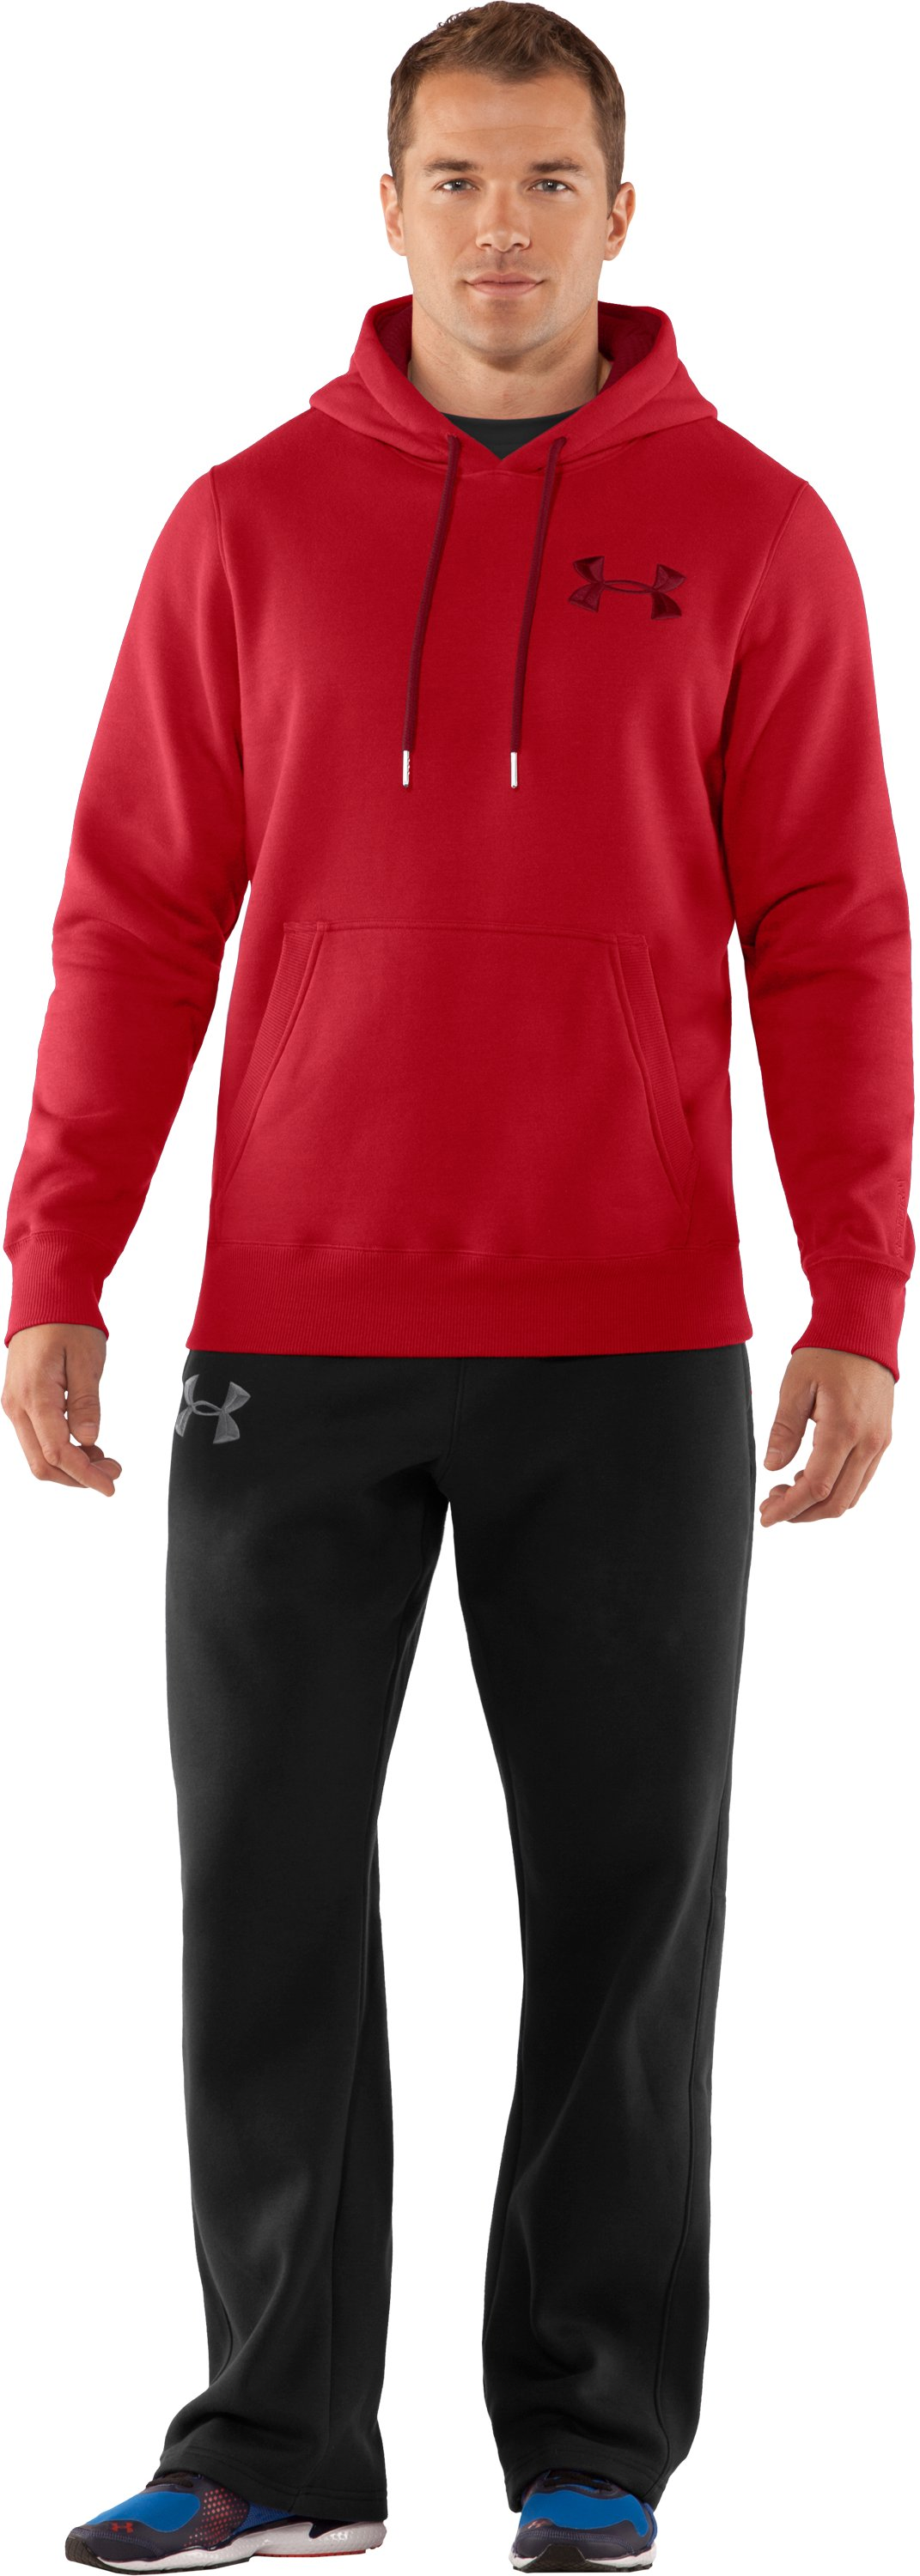 Men's Charged Cotton® Storm Pullover Hoodie, Red